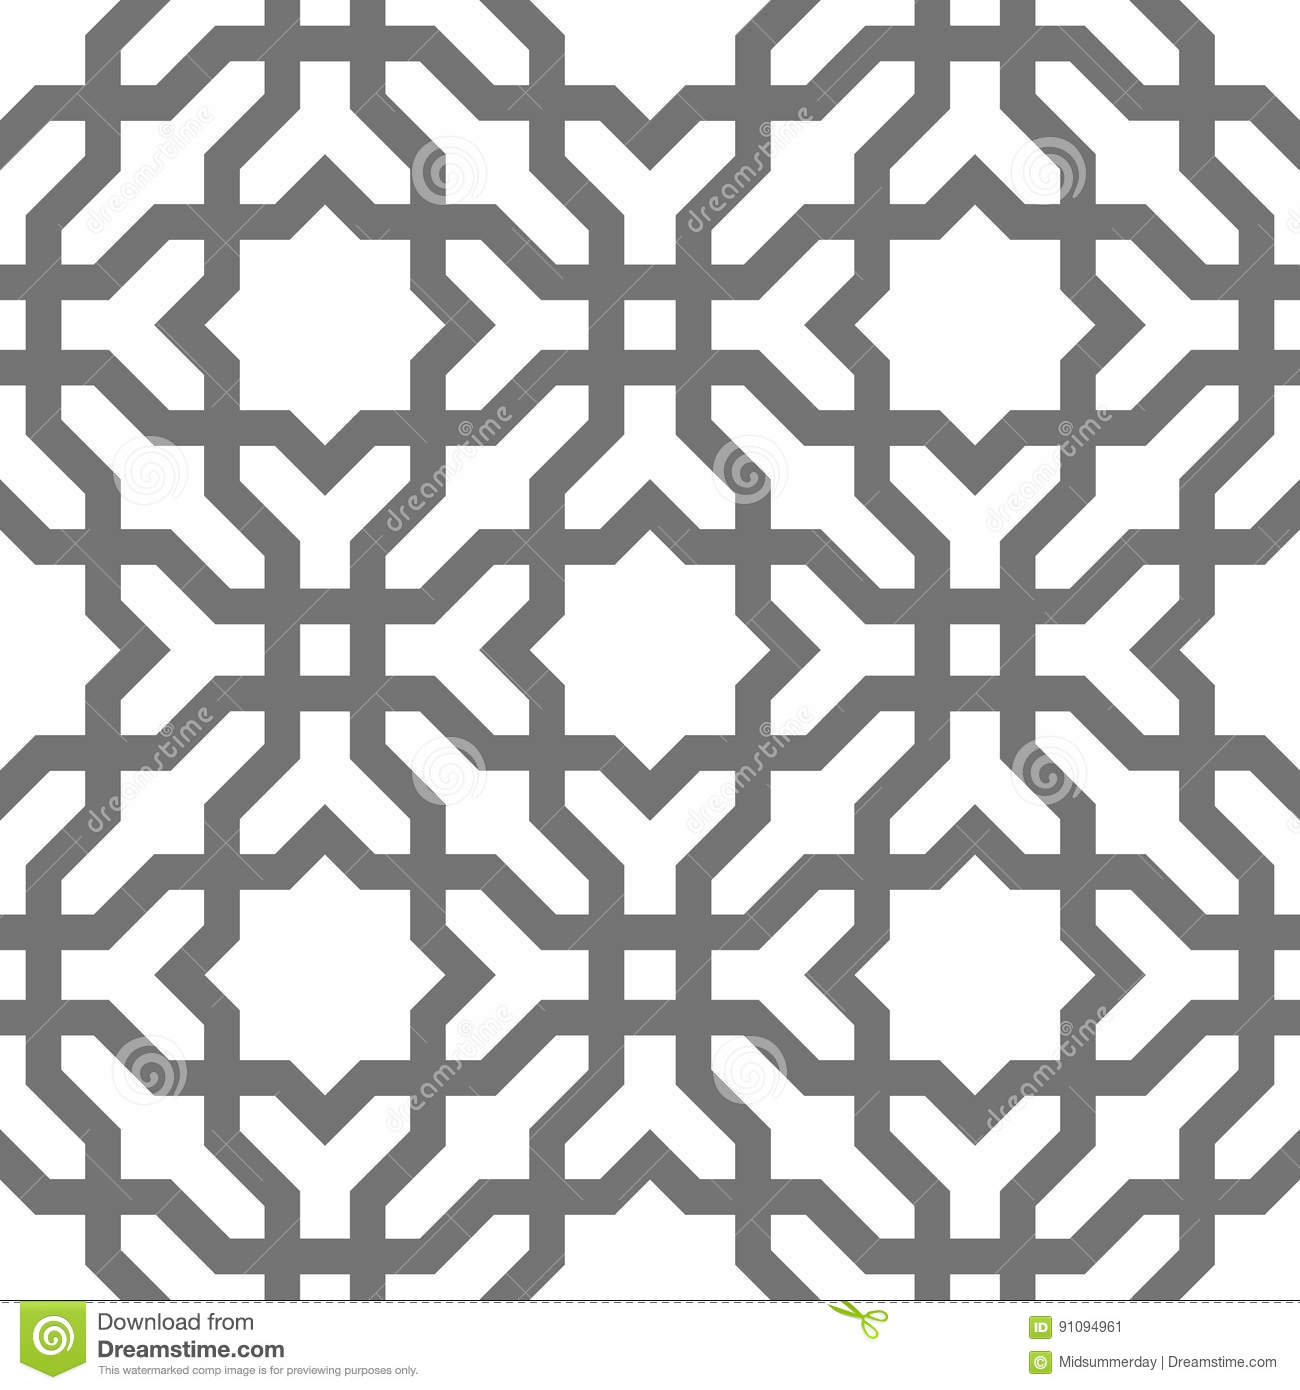 Download Islamic Vector Geometric Ornaments, Traditional Arabic Art. Oriental Seamless Pattern. Turkish, Arabian, Moroccan Tile Stock Vector - Illustration of decor, orient: 91094961